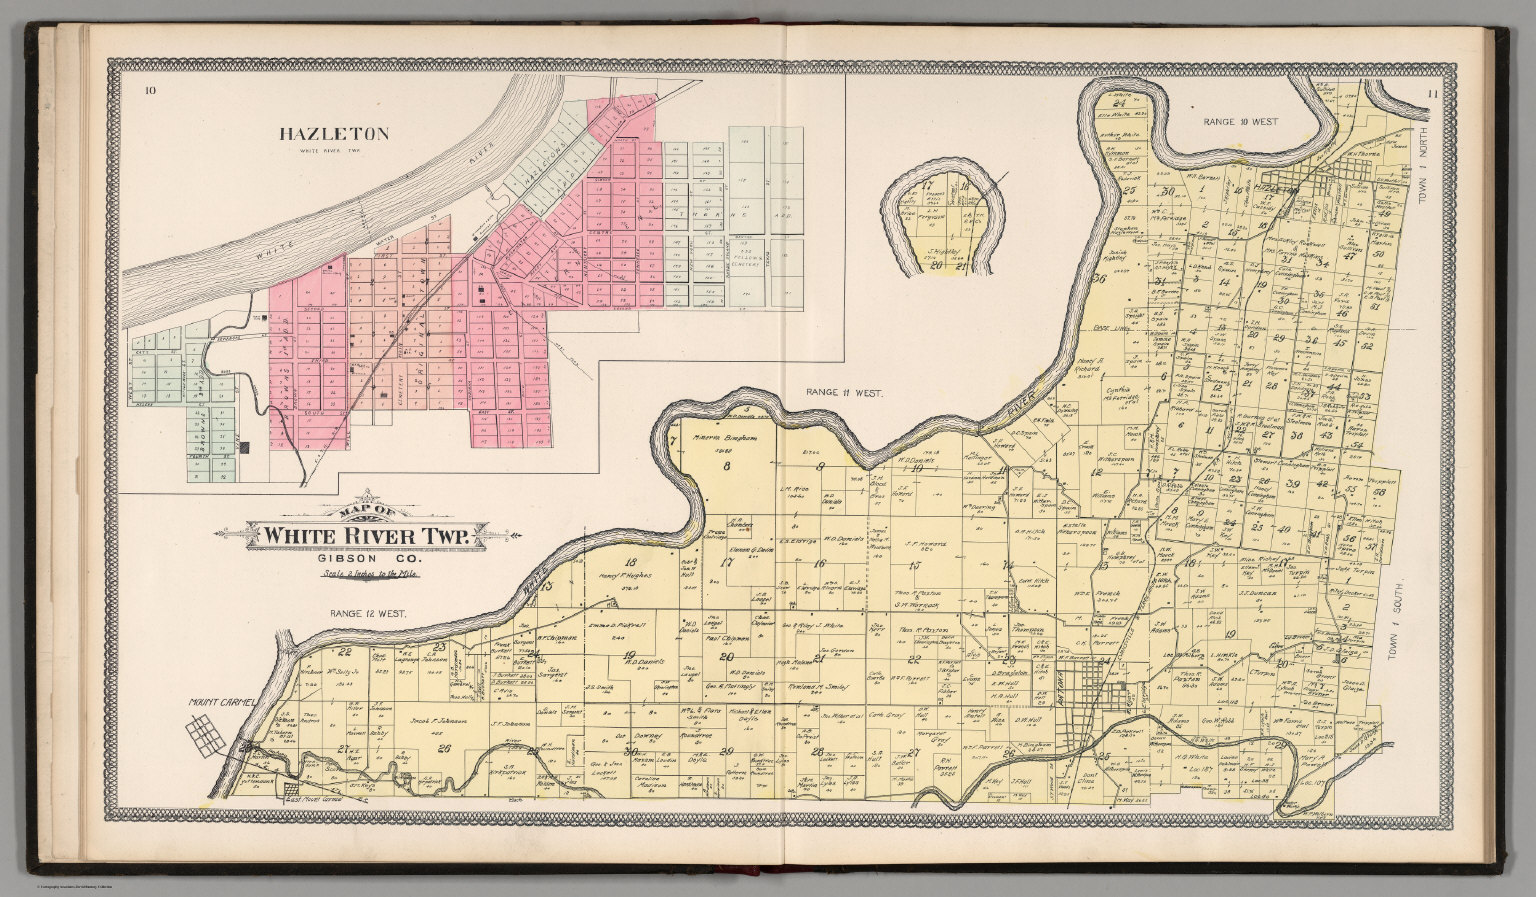 Gibson County Indiana Map.White River Township Gibson County Indiana Hazleton David